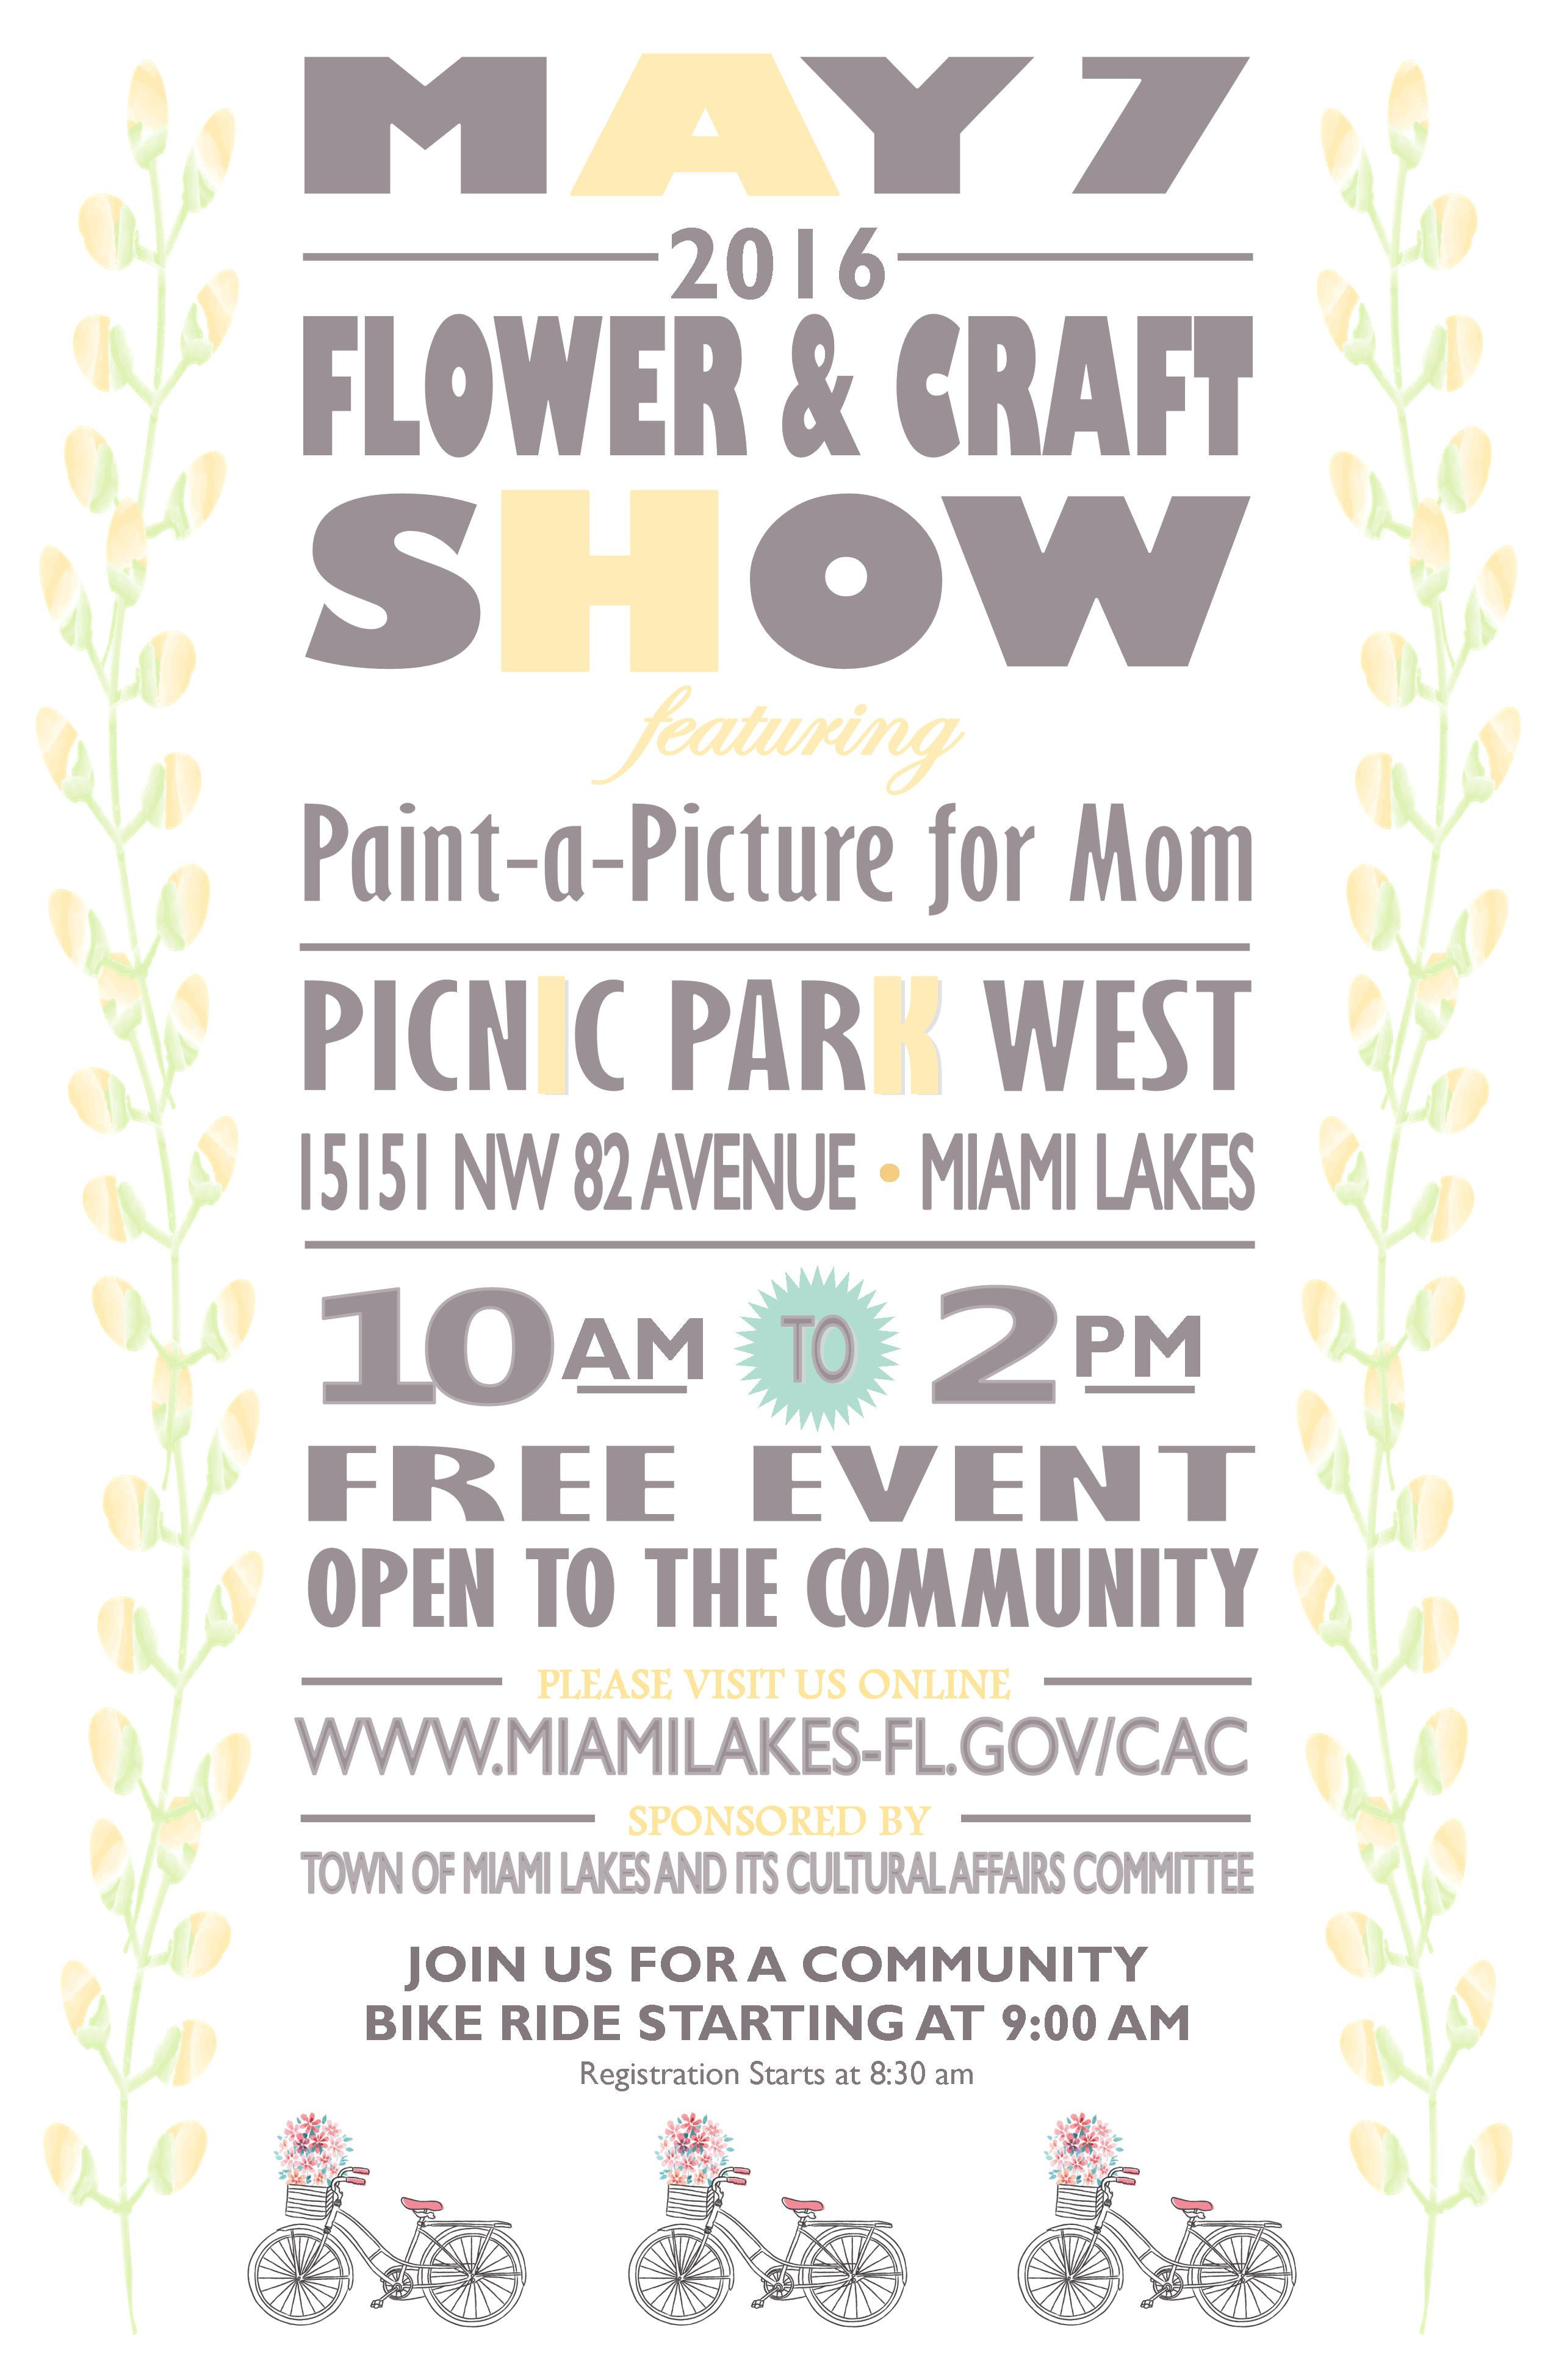 Paint a Picture for Mom flyer 2016 w bike info